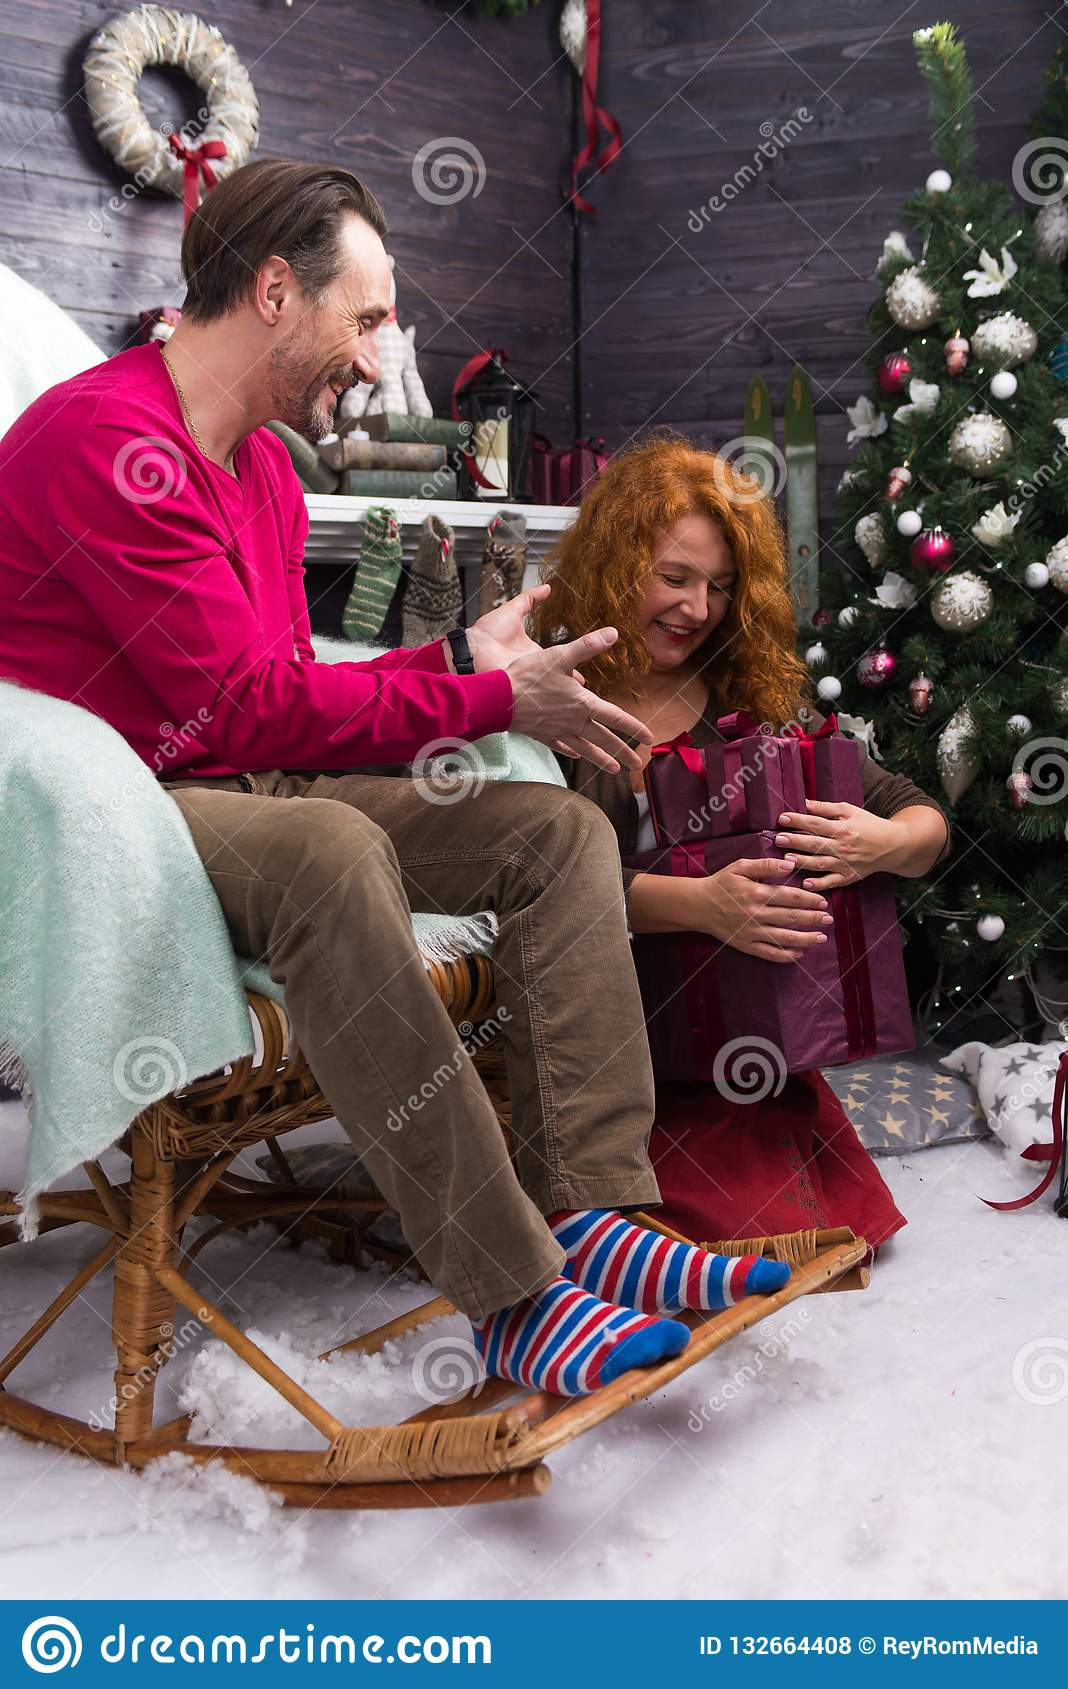 Excited man smiling and looking at the presents in womans hands